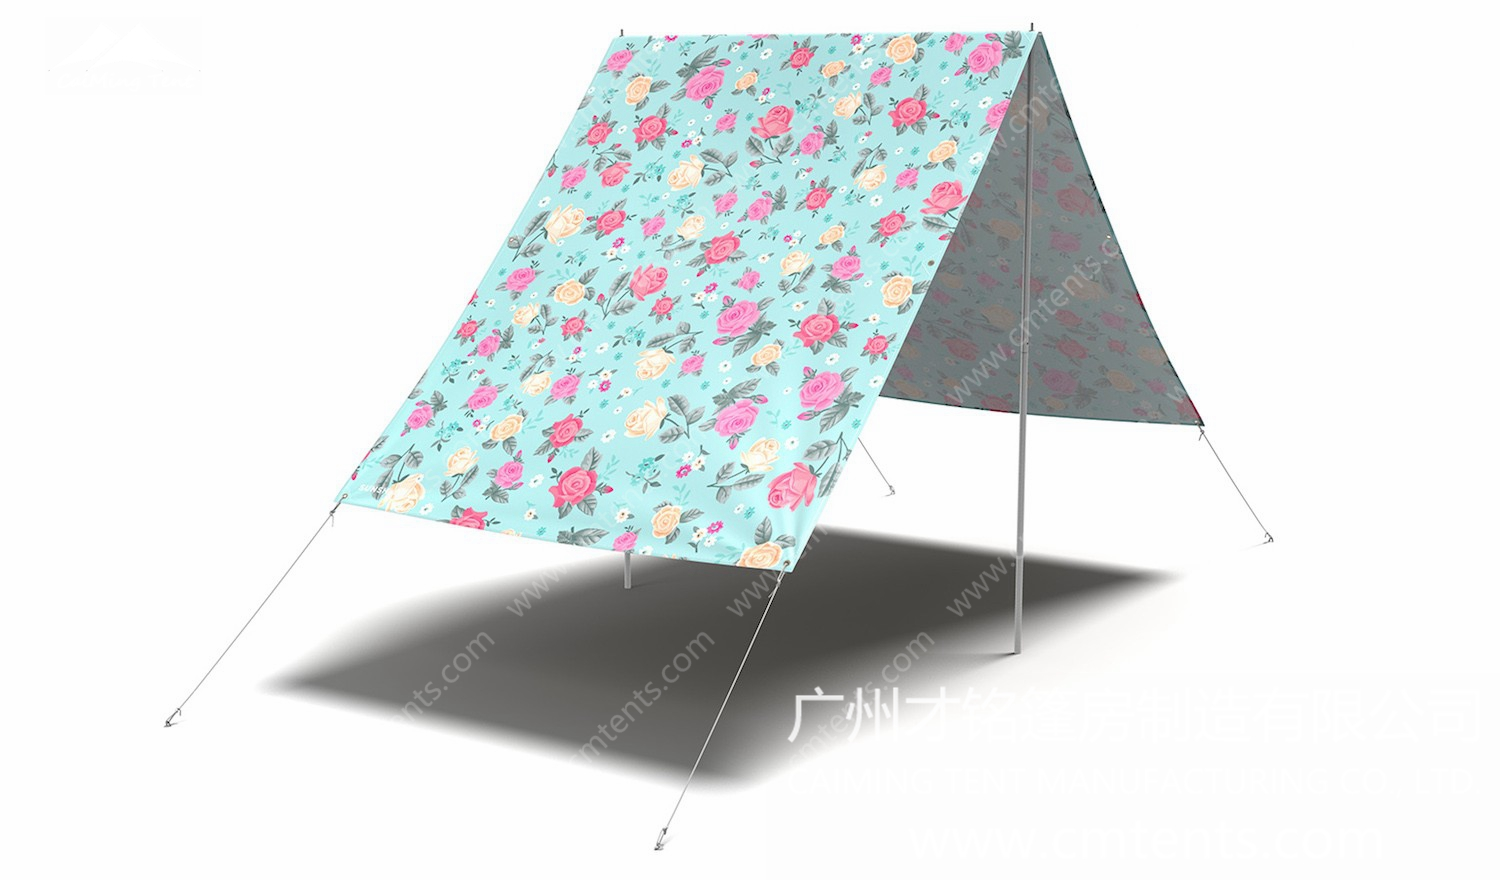 Beach Canopy,Beach Canopy for sale,portable beach canopy,beach shade,beach canopy reviews,beach umbrella,beach canopy walmart,beach canopy target,beach canopy amazon,beach canopy sand pockets,beach canopy,beach canopy chair,beach canopy amazon,beach canopy walmart,beach canopy target,beach canopy pop up,beach canopy anchors,beach canopy umbrella,beach canopy stakes,beach canopy wind resistant,beach canopy,beach canopy sun shelter,beach canopy tent,beach canopy pop up,beach canopy chair,beach canopy for baby,beach canopy 10x10,beach canopy with sides,beach canopy 12x12,beach canopy anchors,beach canopy tent,best beach canopy,beach canopy shade,beach canopy walmart,best beach canopy for high wind,coleman beach canopy,lightspeed outdoors quick beach canopy tent,portable beach canopy,target beach canopy,pop-up beach canopy,beach canopy,beach canopy amazon,beach canopy for baby,beach canopy chair,beach canopy tent,beach canopy dick's sporting goods,beach canopy reviews,beach canopy tent shade,beach canopy rentals,beach canopy walmart,beach canopies,beach canopy with sand pockets,beach canopy tents,beach canopy clearance,beach canopy for babies,beach canopy tent cabana,beach canopy for windy locations,beach canopy target,beach canopy tent walmart,beach canopy chairs,beach canopy with vent,beach canopy 15x15,beach canopy with sand weight,beach canopy stakes,beach canopy sand bags,beach canopy amazon,beach canopy walmart,beach canopy target,beach canopy pop up,beach canopy chair,beach canopy anchors,beach canopy umbrella,beach canopy costco,beach canopy stakes,beach canopy rental,beach canopy,beach canopy tent,beach canopy at walmart,beach canopy at target,beach canopy at costco,beach canopy academy,beach canopy australia,beach chair canopy attachment,beach canopy tent amazon,beach canopy sports authority,make a beach canopy,anchoring a beach canopy,steal a beach canopy,setting up a beach canopy,beach canopy bed,beach canopy bed bath and beyond,beach canopy baby,beach canopy best,beach canopy big 5,beach canopy big lots,beach canopy bjs,beach buggy canopy for sale,beach tent big w,beach tent bunnings,beach canopy coleman,beach canopy cheap,beach canopy chair lowest price,beach canopy canada,beach canopy chair walmart,canopy beach chairs target,canopy beach chairs sale,beach canopy diy,canopy beach drive,beach tent decathlon,beach tent diy,beach tent dubai,beach tent deal,beach tent dog,beach tent dome,beach tent designs,beach tent definition,beach canopy easy,beach canopy ebay,canopy beach eco market,beach tent ebay,easy set up beach tent,beach tent edmonton,beach tent eddie bauer,beach tent etsy,beach tent ems,excalibur beach canopy,e-z up beach canopy,beach canopy for sale,beach canopy for babies,beach canopy facebook,beach canopy fill with sand,beach canopy for family,beach canopy for toddlers,beach canopy for dogs,beach canopy frame,beach canopy for rent,beach canopy for cheap,beach gazebo canopy,beach tent groupon,beach tent go outdoors,beach tent genji,beach tent gumtree,beach tent gold coast,beach tent goa,beach tent gazebo,beach tent gander mountain,beach tent geelong,beach canopy home depot,beach canopy hack,beach canopy hilton head,beach canopy high wind,beach canopy heavy duty,beach canopy hood,beach half canopy,beach hut canopy,beach tent hong kong,beach tent house in goa,beach canopy ideas,beach canopy in stores,beach instant canopy,beach wedding canopy ideas,beach canopy thieves identified,best beach canopy in wind,best beach instant canopy,infant beach canopy,inflatable beach canopy,ikea beach canopy,beach tent john lewis,beach tent johannesburg,jaco beach canopy tours,jeep beach canopy,canopy jaco beach,tent beach jundiai shopping,tent beach jaqueta,tent beach jeans,beach canopy kmart,beach king canopy,beach tent kmart,beach tent kmart australia,beach tent kathmandu,beach tent kohls,beach tent kopen,beach tent kijiji,beach tent kelty,beach tent kickstarter,beach canopy lowes,beach canopy lightweight,beach canopy large,canopy beach lounge chairs,beach tent large,beach tent lidl,beach tent lightweight,lightspeed beach tent,beach tent lowes,beach tent ll bean,beach canopy meijer,beach tent melbourne,beach tent masters,beach tent mothercare,beach tent mec,beach tent makro,beach tent millets,beach tent malaysia,beach tent manufacturers,beach tent mountain warehouse,beach canopy near me,beach tent nz,beach tent next day delivery,beach tent new zealand,beach tent no floor,beach tent newquay,beach tent name,beach tent nivea,beach nursery tent,beach nap tent,beach canopy ocean city md,beach canopy on sale,beach canopy on facebook,beach canopy one pole,beach canopy outer banks,beach tent on sale,beach tent one step ahead,beach tent ottawa,beach tent oztrail,beach tent ollies,beach canopy portable,beach canopy pinterest,beach canopy parts,beach party canopy,beach tent pop up,beach tent pegs,beach tent perth,beach tent philippines,beach tent price,beach canopy quest,beach tent quechua,beach tent qatar,beach tent qeedo,beach tent quick,tent beach quiksilver,quiksilver beach canopy,quick beach canopy,quality beach canopy,beach canopy rental port aransas,beach canopy reviews,beach canopy rei,beach canopy rental los angeles,beach canopy rental hilton head,beach canopy rental sunset beach nc,beach tent reviews,beach tent reviews australia,beach tent rentals gulf shores al,toys r us beach canopy,beach canopy shade,beach canopy sand anchor,beach canopy shelter,beach canopy sandbags,beach canopy setup,beach canopy sale,beach canopy sand,beach canopy sears,beach canopy sam's club,south beach canopy bed,beach canopy tent walmart,beach canopy tent costco,beach canopy tent reviews,beach canopy that uses sand,beach canopy tent kmart,beach canopy tie downs,beach canopy theft,beach canopy using sand,beach canopy uv protection,beach canopy uk,beach tent uk,beach tent uv protection,beach tent uv,beach tent upf 50,beach tent umbrellas,beach tent uv pop up,beach canopy video,beach tent video,beach tent vancouver,beach canopy with vent,beach umbrella or canopy,beachview tent rentals,beach volleyball tent,new smyrna beach canopy video,beach canopy wind resistant,beach canopy with sides,beach canopy weights,beach canopy with sand anchor,beach canopy with sand pockets,beach canopy with spf,beach canopy with sandbags,beach canopy with wheels,beach canopy xs cargo,beach tent xl,beach canopy 10 x 10,10 x 10 beach canopy,8 x 8 beach canopy,12 x 12 beach canopy,6 x 6 beach canopy,beach canopy you fill with sand,beach tent youtube,youtube beach canopy,tent beach yellow boot,tent beach yahoo,beach tent zip up front,beach tent zulily,beach tent zip,beach tent zip up,beach tent zandvoort,tent beach zona norte,beach canopy 10x10,beach canopy 12x12,portable beach canopy 10x10,beach canopy 2016,myrtle beach canopy restrictions 2014,2 person beach canopy,big 5 beach canopy,beach canopy 8x8,10 x 10 beach canopy,12 x 12 beach canopy,6 x 6 beach canopy,8 x 8 beach canopy,abo beach canopy,academy beach canopy,academy sports beach canopy,adventure canopy tour jaco beach,aluminum beach canopy,aluminum beach canopy tent,aluminum frame beach canopy,amazon beach canopy,anchoring beach canopy,auburn beach canopy,australian beach canopy,baby beach canopy,baby beach canopy target,beach buggy canopy for sale,beach canopy,beach canopy 10 x 10,beach canopy academy,beach canopy accessories,beach canopy amazon,beach canopy anchors,beach canopy at costco,beach canopy at target,beach canopy at walmart,beach canopy australia,beach canopy baby,beach canopy bed,beach canopy bed bath and beyond,beach canopy best,beach canopy big 5,beach canopy big lots,beach canopy bjs,beach canopy canada,beach canopy chair,beach canopy chair lowest price,beach canopy chair walmart,beach canopy cheap,beach canopy coleman,beach canopy costco,beach canopy diy,beach canopy easy,beach canopy ebay,beach canopy facebook,beach canopy fill with sand,beach canopy for babies,beach canopy for cheap,beach canopy for dogs,beach canopy for family,beach canopy for rent,beach canopy for sale,beach canopy for toddlers,beach canopy frame,beach canopy hack,beach canopy heavy duty,beach canopy high wind,beach canopy hilton head,beach canopy home depot,beach canopy hood,beach canopy ideas,beach canopy in stores,beach canopy kmart,beach canopy large,beach canopy lightweight,beach canopy lowes,beach canopy meijer,beach canopy near me,beach canopy ocean city md,beach canopy on facebook,beach canopy on sale,beach canopy one pole,beach canopy outer banks,beach canopy parts,beach canopy pinterest,beach canopy pop up,beach canopy portable,beach canopy quest,beach canopy ratings,beach canopy rei,beach canopy rental,beach canopy rental hilton head,beach canopy rental los angeles,beach canopy rental port aransas,beach canopy rental sunset beach nc,beach canopy reviews,beach canopy sail,beach canopy sale,beach canopy sand,beach canopy sand anchor,beach canopy sandbags,beach canopy sears,beach canopy setup,beach canopy shade,beach canopy shelter,beach canopy stakes,beach canopy target,beach canopy tent,beach canopy tent costco,beach canopy tent kmart,beach canopy tent reviews,beach canopy tent walmart,beach canopy that uses sand,beach canopy theft,beach canopy thieves identified,beach canopy tie downs,beach canopy toronto,beach canopy uk,beach canopy umbrella,beach canopy using sand,beach canopy uv protection,beach canopy video,beach canopy walmart,beach canopy weights,beach canopy wind resistant,beach canopy with sand anchor,beach canopy with sand pockets,beach canopy with sandbags,beach canopy with sides,beach canopy with spf,beach canopy with vent,beach canopy with walls,beach canopy xs cargo,beach canopy you fill with sand,beach chair canopy attachment,beach chairs with canopy top,beach gazebo canopy,beach half canopy,beach hut canopy,beach instant canopy,beach king canopy,beach nap tent,beach nursery tent,beach party canopy,beach tent big w,beach tent bunnings,beach tent deal,beach tent decathlon,beach tent definition,beach tent designs,beach tent diy,beach tent dog,beach tent dome,beach tent dubai,beach tent ebay,beach tent eddie bauer,beach tent edmonton,beach tent ems,beach tent etsy,beach tent gander mountain,beach tent gazebo,beach tent geelong,beach tent genji,beach tent go outdoors,beach tent goa,beach tent gold coast,beach tent groupon,beach tent gumtree,beach tent hong kong,beach tent house in goa,beach tent johannesburg,beach tent john lewis,beach tent kathmandu,beach tent kelty,beach tent kickstarter,beach tent kijiji,beach tent kmart,beach tent kmart australia,beach tent kohls,beach tent kopen,beach tent large,beach tent lidl,beach tent lightweight,beach tent ll bean,beach tent lowes,beach tent makro,beach tent malaysia,beach tent manufacturers,beach tent masters,beach tent mec,beach tent melbourne,beach tent millets,beach tent mothercare,beach tent mountain warehouse,beach tent name,beach tent new zealand,beach tent newquay,beach tent next day delivery,beach tent nivea,beach tent no floor,beach tent nz,beach tent ollies,beach tent on sale,beach tent one step ahead,beach tent ottawa,beach tent oztrail,beach tent pegs,beach tent perth,beach tent philippines,beach tent pop up,beach tent price,beach tent qatar,beach tent qeedo,beach tent quechua,beach tent quick,beach tent uk,beach tent umbrellas,beach tent upf 50,beach tent uv,beach tent uv pop up,beach tent uv protection,beach tent vancouver,beach tent video,beach tent xl,beach tent youtube,beach tent zandvoort,beach tent zip,beach tent zip up,beach tent zip up front,beach tent zulily,beach umbrella cabana canopy,beach umbrella or canopy,beach umbrella tent canopy,beach volleyball tent,beach wedding canopy ideas,beachview tent rentals,best beach canopy,best beach canopy for baby,best beach canopy in wind,best beach canopy reviews,best beach canopy wind,best beach instant canopy,best canopy for beach,best e-z up canopy for the beach,best family beach canopy,best large beach canopy,best lightweight beach canopy,best pop up beach canopy,best portable beach canopy,best price on beach canopy,best rated beach canopy,best selling beach canopy,best sturdy beach canopy,best wind resistant beach canopy,butterfly beach canopy,can you have canopy on myrtle beach,can you take a canopy to the beach,can you use a canopy on myrtle beach,canadian tire beach canopy,canopy beach chairs sale,canopy beach chairs target,canopy beach drive,canopy beach eco market,canopy beach lounge chairs,canopy for beach,canopy jaco beach,canopy law in myrtle beach,canopy on beach,canopy rental virginia beach,canopy rentals sunset beach nc,canvas beach canopy,cheap beach canopy,children's beach canopy,coleman beach canopy,collapsible beach canopy,commercial beach canopy,compact beach canopy,costco beach canopy,custom beach canopy,detachable canopy for beach chair,discount beach canopy,diy beach canopy,diy wedding beach canopy,do it yourself beach canopy,dog beach canopy,dome beach canopy,dome shaped beach canopy,durable beach canopy,e-z up beach canopy,easiest beach canopy,easy beach canopy,easy pop up beach canopy,easy set up beach tent,easy setup beach canopy,ebay beach canopy,embark beach canopy,excalibur beach canopy,extra large beach canopy,ez up beach canopy,family beach canopy,first up beach canopy,fisher price beach canopy,florida beach canopy,florida beach canopy theft,foldable beach canopy,folding beach canopy,fsu beach canopy,gander mountain beach canopy,gator beach canopy,good beach canopy,guide series beach canopy,guide series sports/beach canopy,gulf shores beach canopy rentals,heavy duty beach canopy,heavy duty beach canopy tent,heavy duty beach chair with canopy,high wind beach canopy,hilton head beach canopy,home depot beach canopy,homemade beach canopy,how to anchor a beach canopy,how to anchor a canopy on the beach,how to beach canopy,how to build a beach canopy,how to build a beach wedding canopy,how to fold beach canopy,how to keep beach canopy from blowing away,how to make a beach canopy,how to make a beach wedding canopy,how to secure a canopy tent on the beach,how to set up beach canopy,ikea beach canopy,in the shade beach canopy,inexpensive beach canopy,infant beach canopy,inflatable beach canopy,instant beach canopy,instant up beach canopy,jaco beach canopy tours,jaco beach zip line canopy tour,jeep beach canopy,kelsyus beach canopy chair,kelsyus beach canopy chair blue,kelsyus beach canopy chair reviews,kelsyus low seat beach chair with canopy,kelsyus wave beach canopy chair,kelty beach canopy,kelty cabana beach canopy tents,kmart beach canopy,kohls beach canopy,ladies stealing beach canopy,large beach canopy,light beach canopy,lightspeed beach canopy,lightspeed beach tent,lightspeed outdoors quick beach canopy tent,lightspeed outdoors quick beach canopy tent blue,lightspeed quick beach canopy tent,lightweight beach canopy,ll bean beach canopy,lowes beach canopy,lsu beach canopy,make your own beach canopy,mesh beach canopy,mini beach canopy,modern beach canopy,most durable beach canopy,myrtle beach canopy,myrtle beach canopy ban,myrtle beach canopy restrictions,myrtle beach canopy rules,new beach canopy,new smyrna beach canopy,new smyrna beach canopy theft,new smyrna beach canopy video,new smyrna beach steal canopy,north myrtle beach canopy ban,north myrtle beach canopy law,north myrtle beach canopy rules,ocean isle beach canopy,ohio state beach canopy,old ladies steal beach canopy,one step ahead beach canopy,outdoor beach canopy,ozark beach canopy,ozark trail beach canopy,packable beach canopy,palm beach canopy,palm beach gazebo replacement canopy,panama city beach canopy rules,pop up beach canopy,pop up beach gazebo canopy,port aransas beach canopy rentals,portable beach canopy,portable beach canopy 10x10,portable beach canopy reviews,portable beach canopy shelter,pvc beach canopy,quality beach canopy,quest beach canopy,quick beach canopy,quick beach canopy tent,quick set up beach canopy,quik shade beach canopy,quiksilver beach canopy,reddit beach canopy,rei beach canopy,reimo palm beach canopy,renetto beach canopy chair,renetto beach canopy chair review,rent beach canopy,reviews beach canopy,rio beach canopy,sears beach canopy,siesta key beach canopy rentals,small beach canopy,spf beach canopy,sports authority beach canopy,stealing beach canopy,strong beach canopy,sturdy beach canopy,sun shade beach canopy,sunset beach canopy rentals,sunset beach nc canopy rules,target beach canopy,tent beach jaqueta,tent beach jeans,tent beach jundiai shopping,tent beach quiksilver,tent beach yahoo,tent beach yellow boot,tent beach zona norte,the best beach canopy,toddler beach canopy,tommy bahama beach canopy,tommy beach canopy,top 10 beach canopy,top beach canopy,top rated beach canopy,toys r us beach canopy,travel beach canopy,tripod beach canopy,truck beach canopy,tsuga beach canopy,uga beach canopy,ultimate beach canopy,unc beach canopy,undercover beach canopy,undercover sport-packer instant beach canopy,university of kentucky beach canopy,used beach canopy,uv protection beach canopy,vented beach canopy,vented beach canopy sport and outdoor,video of ladies stealing beach canopy,video of woman stealing beach canopy,virginia beach canopy rules,walmart beach canopy,walmart beach canopy tent,wedding beach canopy,what is the best beach canopy,what is the best canopy tent for the beach,what is the best pop up canopy for the beach,what is the best way to secure a beach canopy,where can i buy a beach canopy,where to buy beach canopy,white beach canopy,who makes the best beach canopy,wind resistant beach canopy,woman caught stealing beach canopy,woman steals beach canopy,woman tries to steal beach canopy,youtube beach canopy,youtube stealing beach canopy,zero gravity beach chair with canopy,beach canopy,beach canopy amazon,beach canopy walmart,beach canopy target,beach canopy pop up,beach canopy chair,beach canopy costco,beach canopy anchors,beach canopy umbrella,beach canopy canada,beach canopy tent,beach canopy at walmart,beach canopy at target,beach canopy at costco,beach canopy academy,beach canopy australia,beach canopy accessories,beach canopy bed,beach canopy bed bath and beyond,beach canopy baby,beach canopy best,beach canopy big 5,beach canopy big lots,beach canopy bjs,beach buggy canopy for sale,beach tent big w,beach tent bunnings,beach canopy coleman,beach canopy cheap,beach canopy chair lowest price,beach canopy chair walmart,beach chair canopy attachment,canopy beach chairs target,canopy beach chairs sale,beach canopy diy,canopy beach drive,beach tent decathlon,beach tent diy,beach tent dubai,beach tent deal,beach tent dog,beach tent dome,beach tent designs,beach tent definition,beach canopy easy,beach canopy ebay,canopy beach eco market,beach tent ebay,easy set up beach tent,beach tent edmonton,beach tent eddie bauer,beach tent etsy,beach tent ems,excalibur beach canopy,beach canopy for sale,beach canopy for babies,beach canopy facebook,beach canopy fill with sand,beach canopy for family,beach canopy for toddlers,beach canopy for dogs,beach canopy frame,beach canopy for rent,beach canopy for cheap,beach gazebo canopy,beach tent groupon,beach tent go outdoors,beach tent genji,beach tent gumtree,beach tent gold coast,beach tent goa,beach tent gazebo,beach tent gander mountain,beach tent geelong,beach canopy home depot,beach canopy hack,beach canopy hilton head,beach canopy high wind,beach canopy heavy duty,beach canopy hood,beach half canopy,beach hut canopy,beach tent hong kong,beach tent house in goa,beach canopy ideas,beach canopy in stores,beach instant canopy,beach wedding canopy ideas,beach canopy thieves identified,best beach canopy in wind,best beach instant canopy,infant beach canopy,inflatable beach canopy,ikea beach canopy,beach tent john lewis,beach tent johannesburg,jaco beach canopy tours,jeep beach canopy,canopy jaco beach,tent beach jundiai shopping,tent beach jaqueta,tent beach jeans,beach canopy kmart,beach king canopy,beach tent kmart,beach tent kmart australia,beach tent kathmandu,beach tent kohls,beach tent kopen,beach tent kijiji,beach tent kelty,beach tent kickstarter,beach canopy lowes,beach canopy lightweight,beach canopy large,canopy beach lounge chairs,beach tent large,beach tent lidl,beach tent lightweight,lightspeed beach tent,beach tent lowes,beach tent ll bean,beach canopy meijer,beach tent melbourne,beach tent masters,beach tent mothercare,beach tent mec,beach tent makro,beach tent millets,beach tent malaysia,beach tent manufacturers,beach tent mountain warehouse,beach canopy near me,beach tent nz,beach tent next day delivery,beach tent new zealand,beach tent no floor,beach tent newquay,beach tent name,beach tent nivea,beach nursery tent,beach nap tent,beach canopy ocean city md,beach canopy on sale,beach canopy on facebook,beach canopy one pole,beach canopy outer banks,beach tent on sale,beach tent one step ahead,beach tent ottawa,beach tent oztrail,beach tent ollies,beach canopy portable,beach canopy pinterest,beach canopy parts,beach party canopy,beach tent pop up,beach tent pegs,beach tent perth,beach tent philippines,beach tent price,beach canopy quest,beach tent quechua,beach tent qatar,beach tent qeedo,beach tent quick,tent beach quiksilver,quiksilver beach canopy,quick beach canopy,quality beach canopy,beach canopy rental,beach canopy rental port aransas,beach canopy reviews,beach canopy rei,beach canopy rental los angeles,beach canopy ratings,beach canopy rental hilton head,beach canopy rental sunset beach nc,beach canopy stakes,beach canopy shade,beach canopy sand anchor,beach canopy shelter,beach canopy sandbags,beach canopy setup,beach canopy sale,beach canopy sand,beach canopy sears,beach canopy sail,beach canopy tent walmart,beach canopy tent reviews,beach canopy tent costco,beach canopy that uses sand,beach canopy tent kmart,beach canopy tie downs,beach canopy theft,beach canopy toronto,beach canopy uk,beach canopy using sand,beach canopy uv protection,beach tent uk,beach tent uv protection,beach tent uv,beach tent upf 50,beach tent umbrellas,beach tent uv pop up,beach canopy video,beach tent video,beach tent vancouver,beach canopy with vent,beach umbrella or canopy,beachview tent rentals,beach volleyball tent,new smyrna beach canopy video,beach canopy wind resistant,beach canopy with sides,beach canopy weights,beach canopy with sand pockets,beach canopy with sand anchor,beach canopy with spf,beach canopy with walls,beach canopy with sandbags,beach canopy xs cargo,beach tent xl,beach canopy 10 x 10,beach canopy you fill with sand,beach tent youtube,youtube beach canopy,tent beach yellow boot,tent beach yahoo,beach tent zip up front,beach tent zulily,beach tent zip,beach tent zip up,beach tent zandvoort,tent beach zona norte,beach canopy 10x10,beach canopy 12x12,portable beach canopy 10x10,beach canopy 2016,myrtle beach canopy restrictions 2014,beach canopy 8x8,